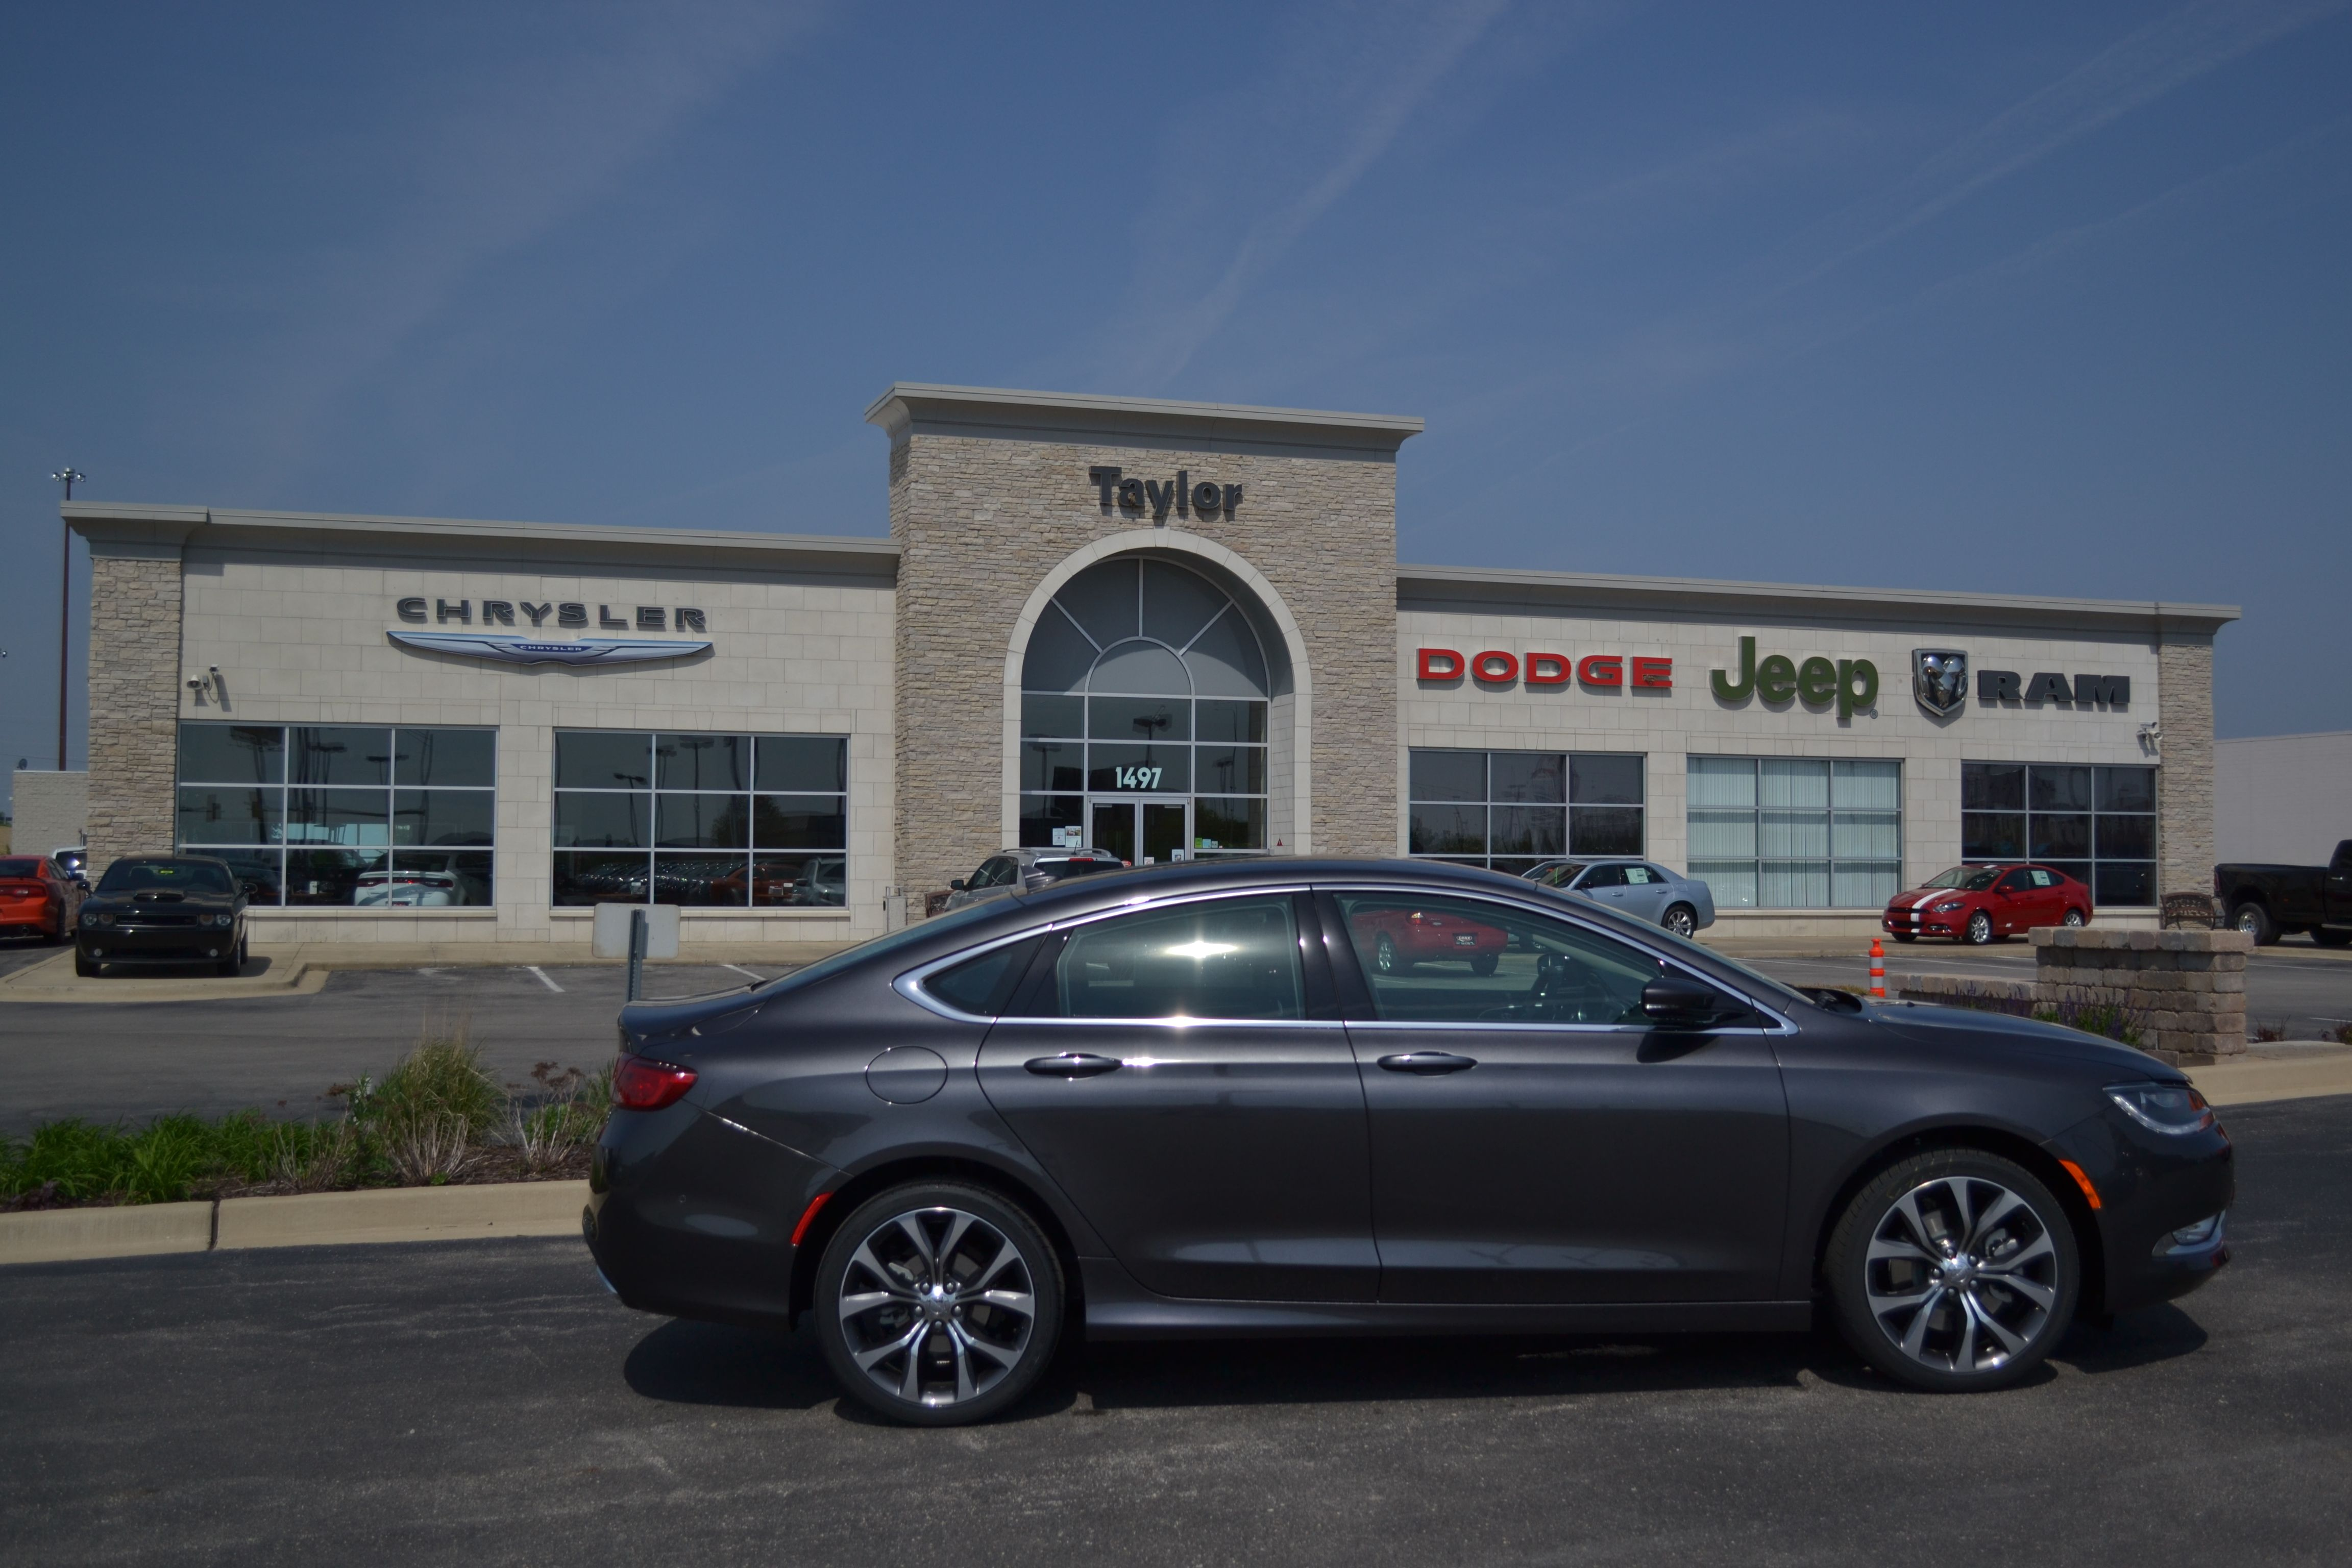 The All New 2015 Chrysler 200 Has Arrived At Taylor!